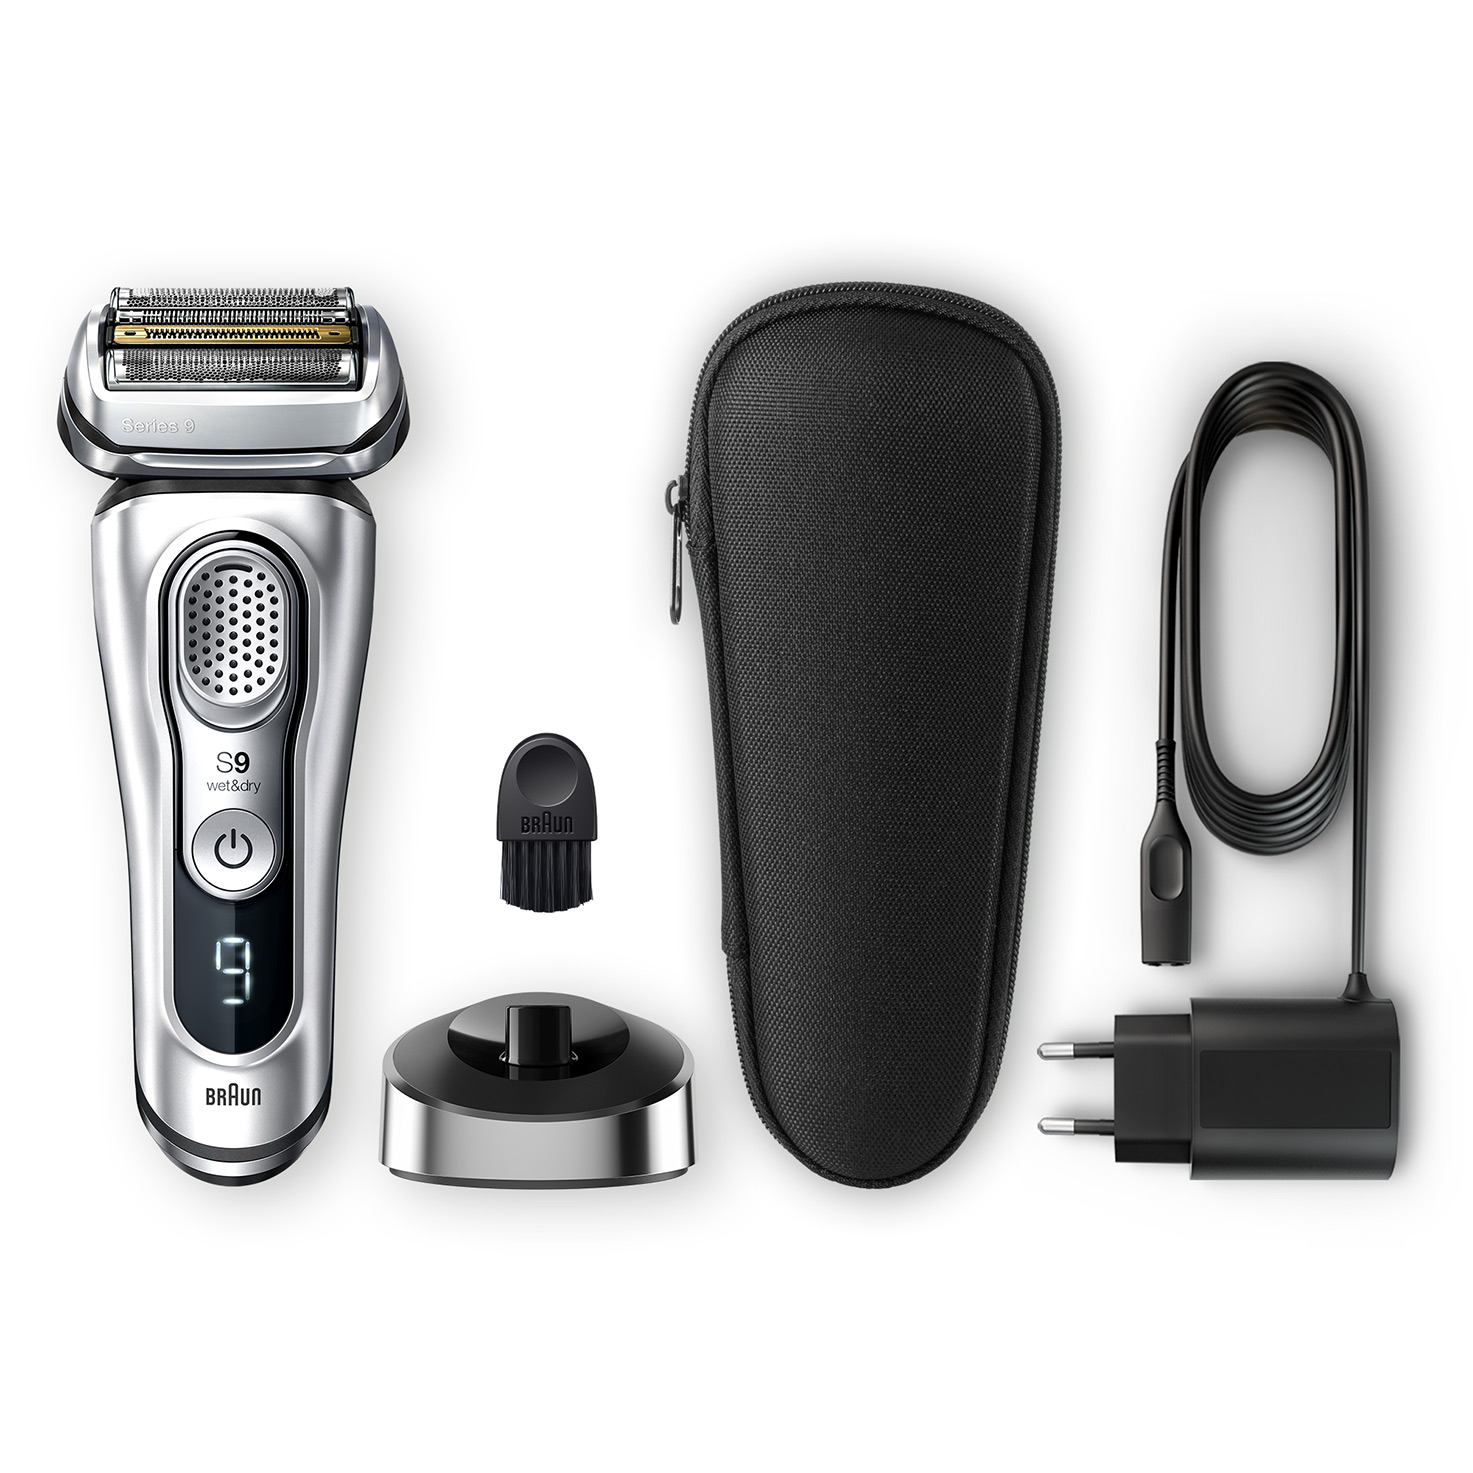 Series 9 9350s shaver - What´s in the box